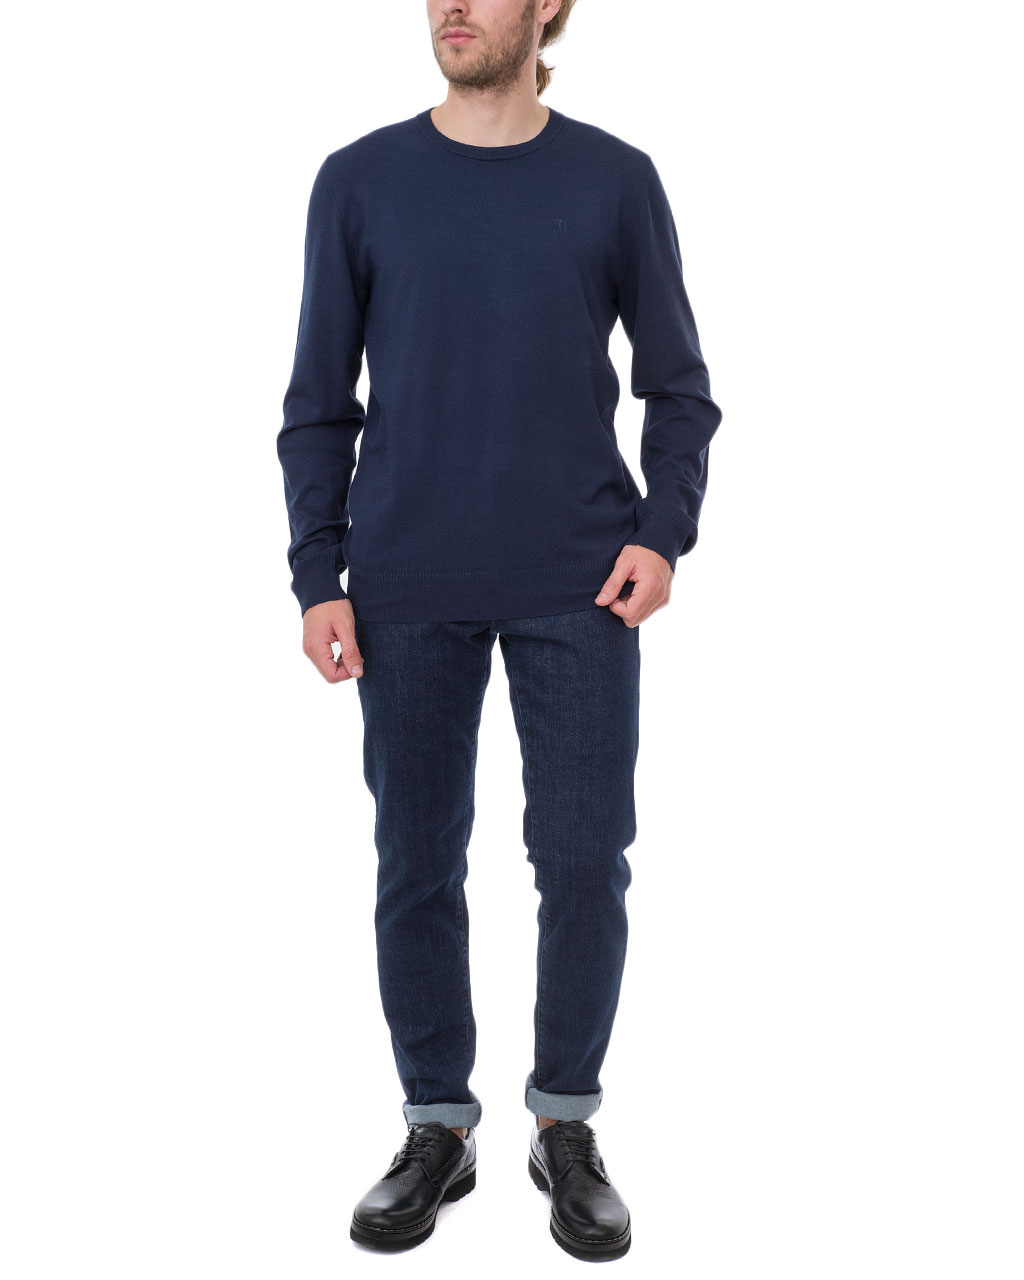 Men's jumper 52M00231-OF000433-U290/19-20 (2)